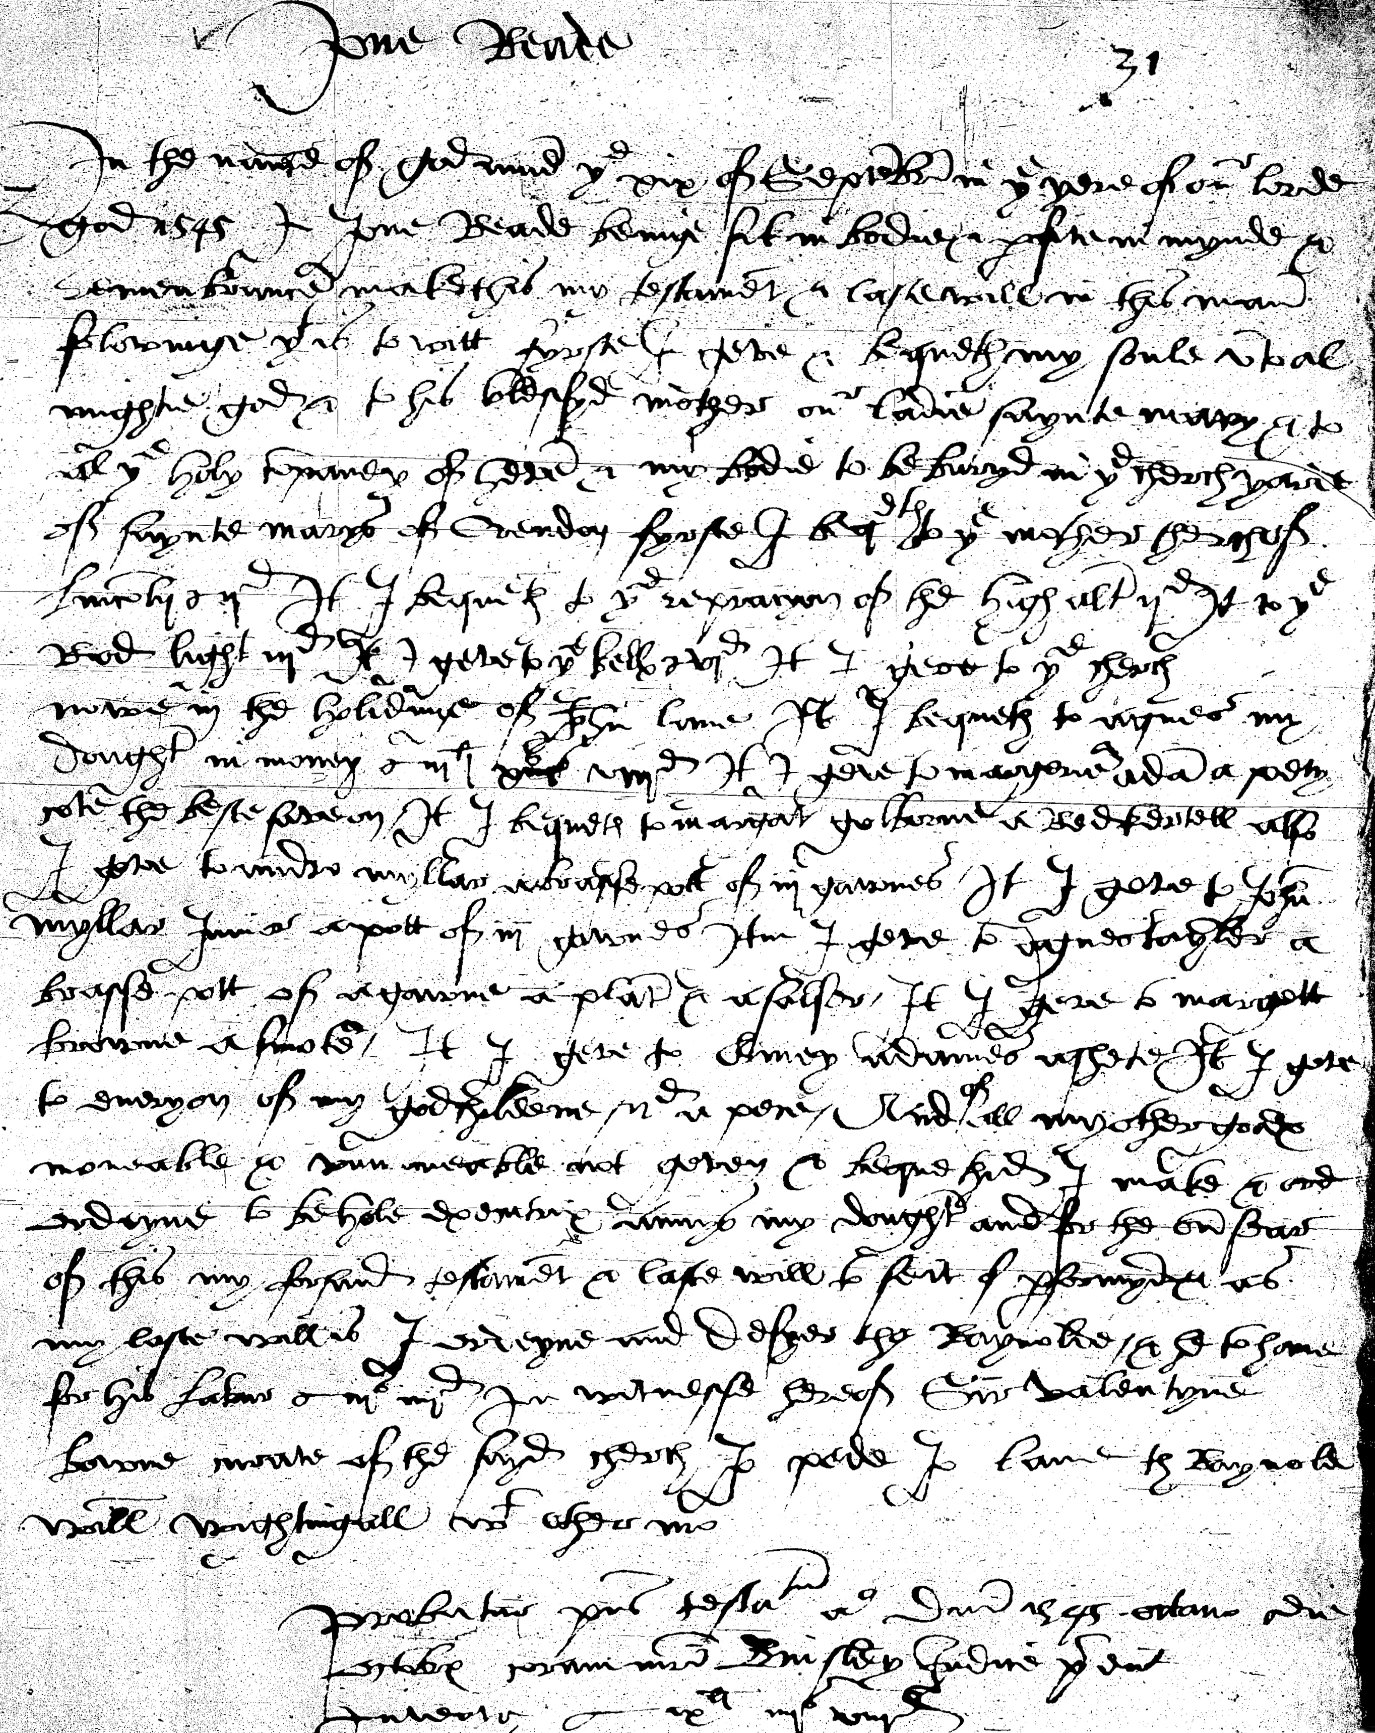 52 Weeks To Better Genealogy Challenge 29 Practice Reading Handwriting